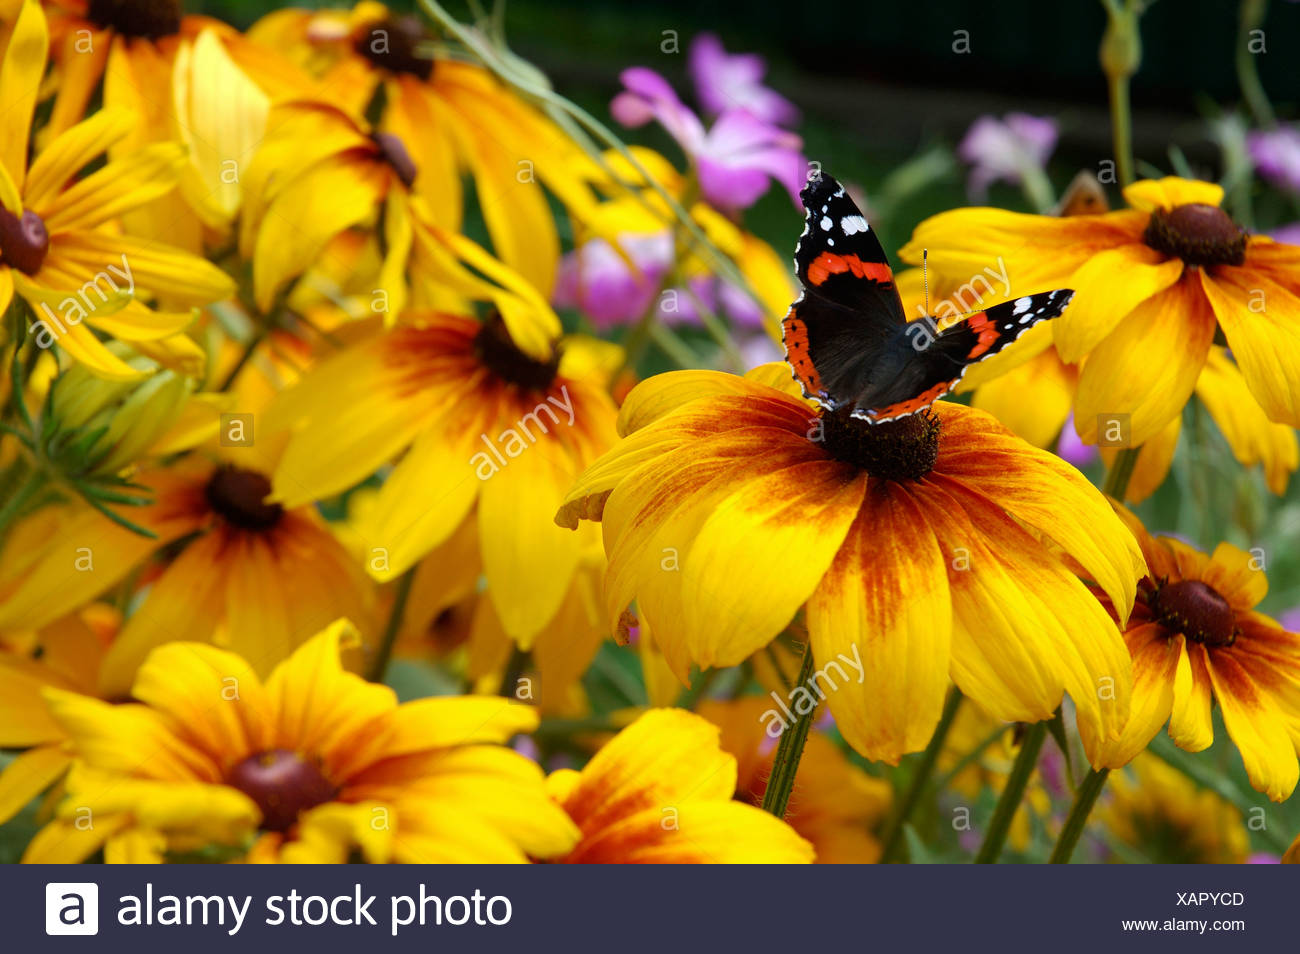 A butterfly rests on the anther of one of the yellow petaled flowers Admiral - Stock Image